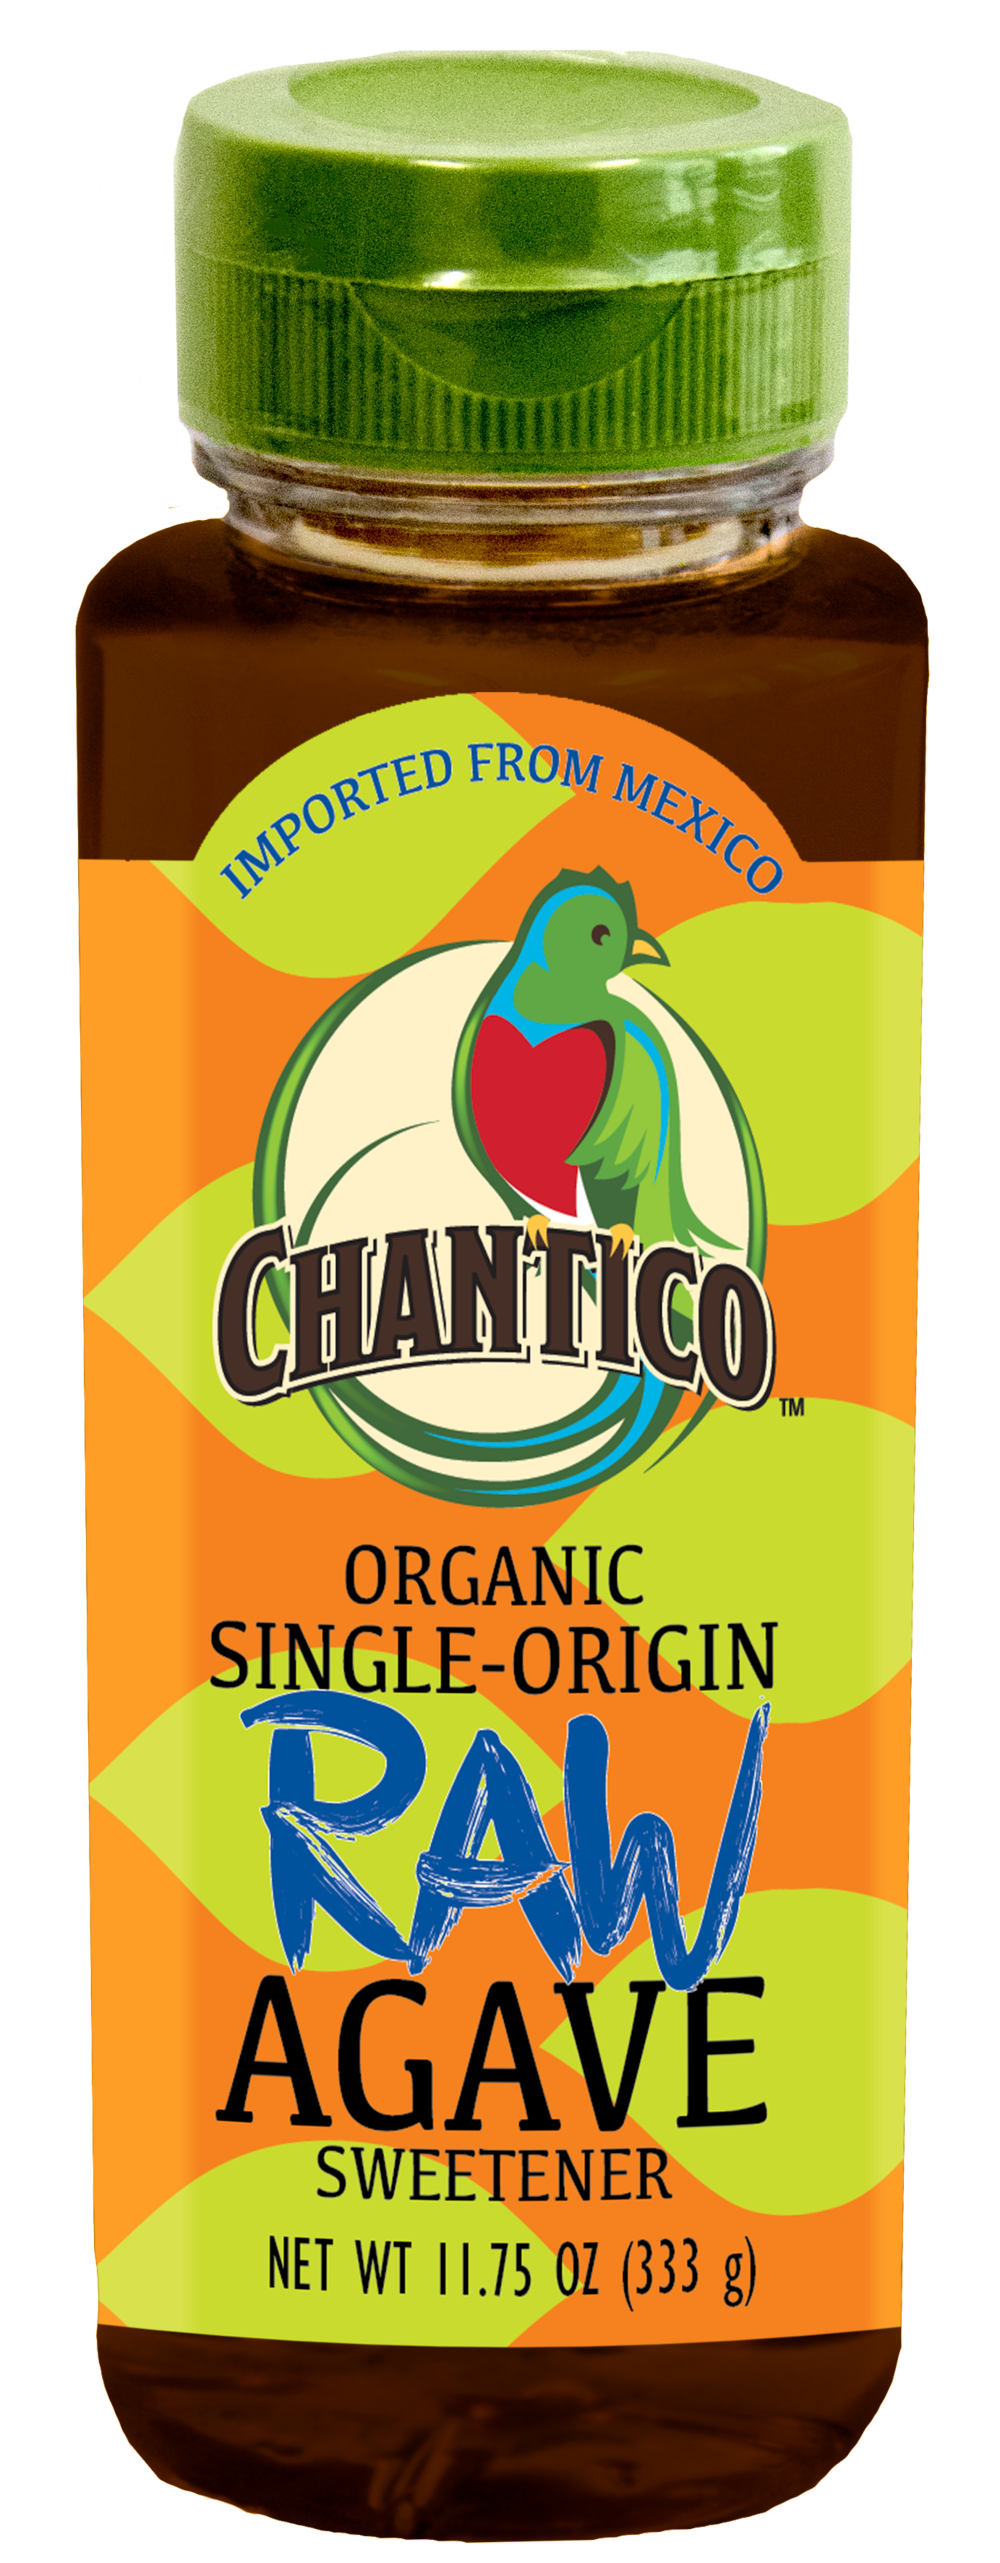 Origo_ChanticoAgave_raw.png